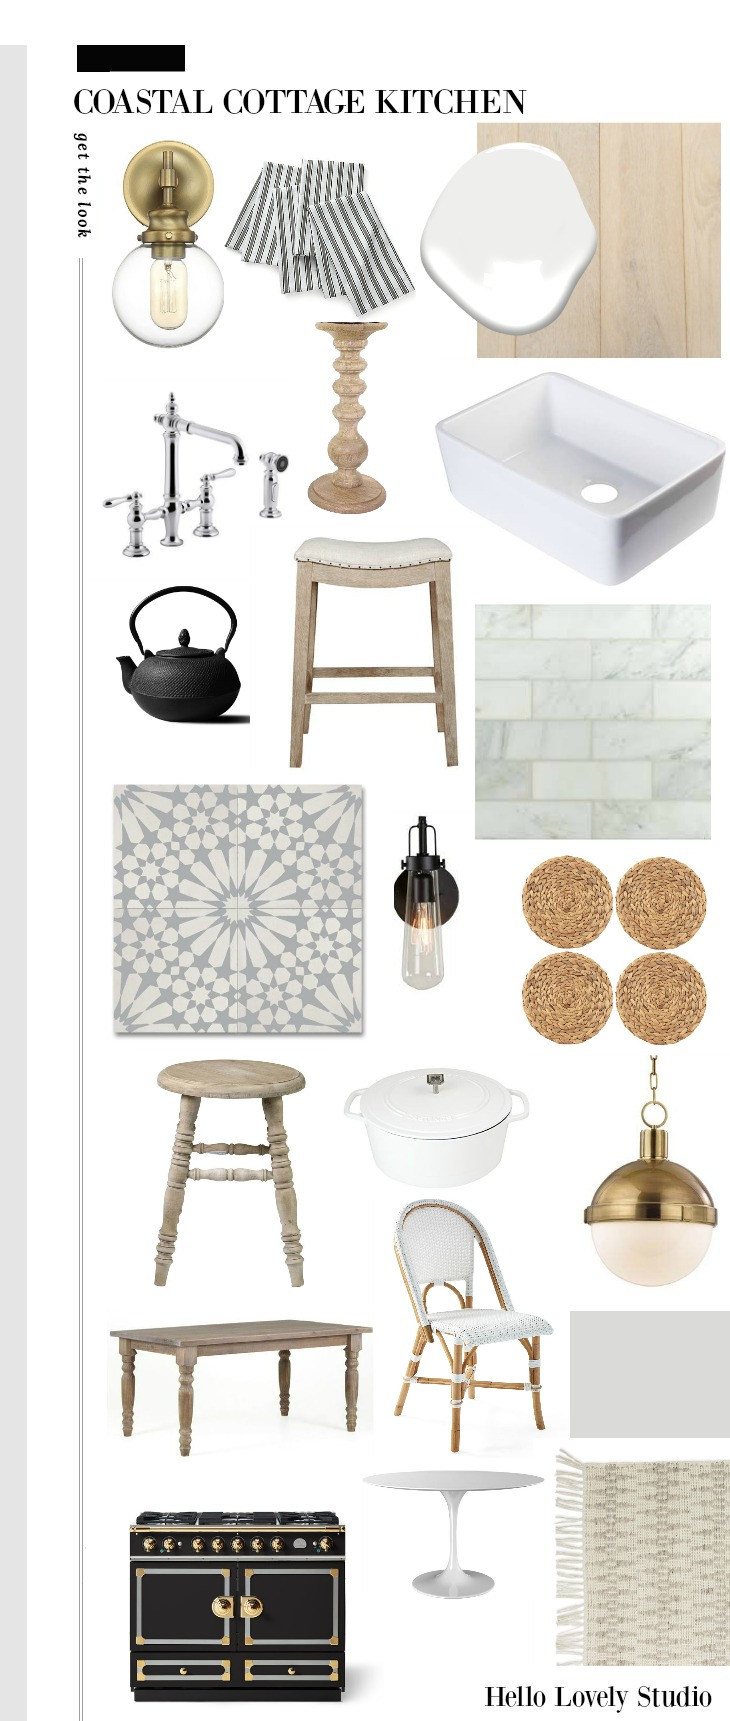 Coastal Cottage Kitchen Get the Look Mood Board from Hello Lovely Studio.